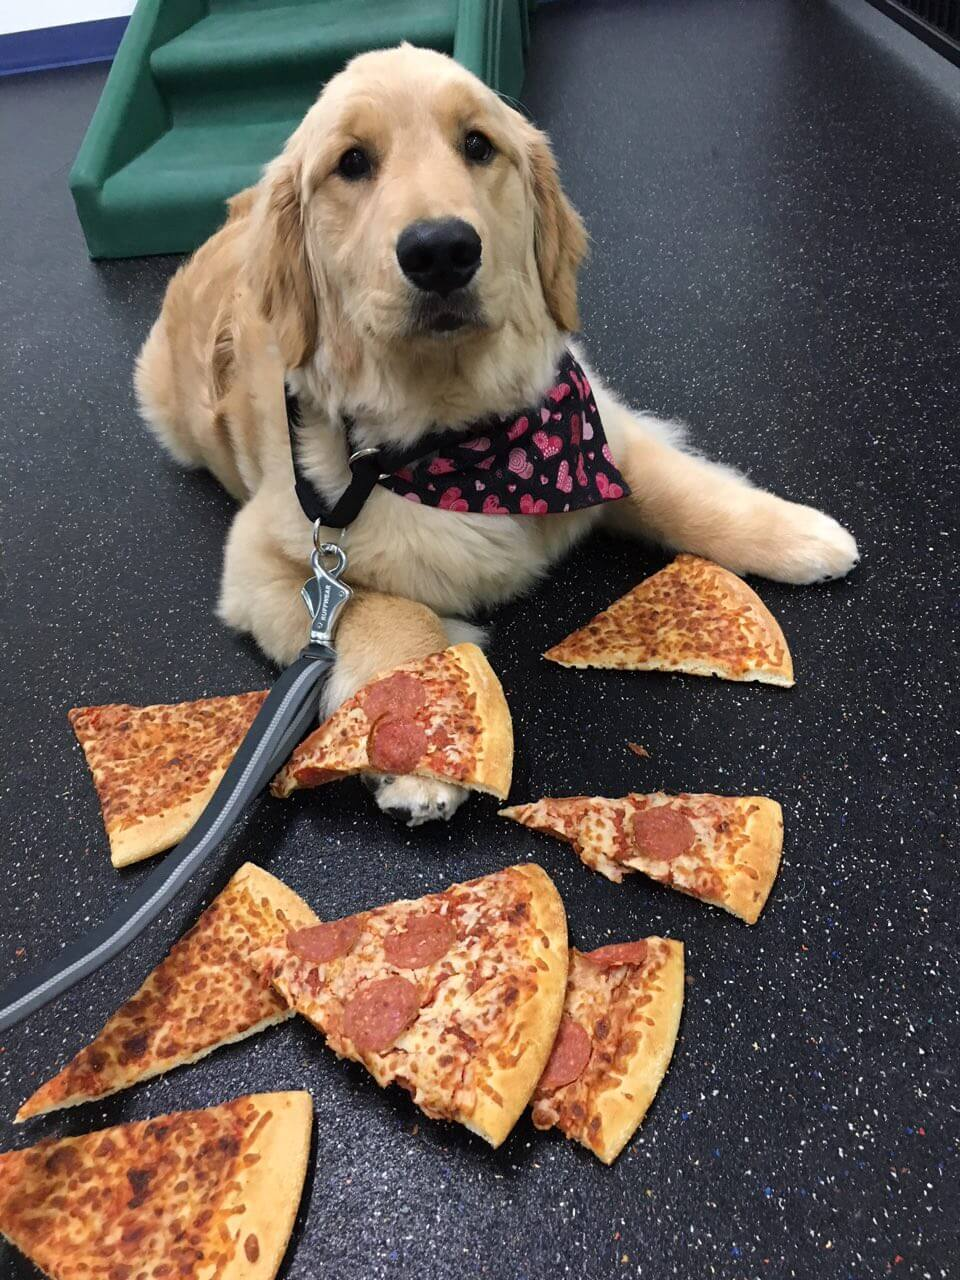 Dog Leaving Pizza